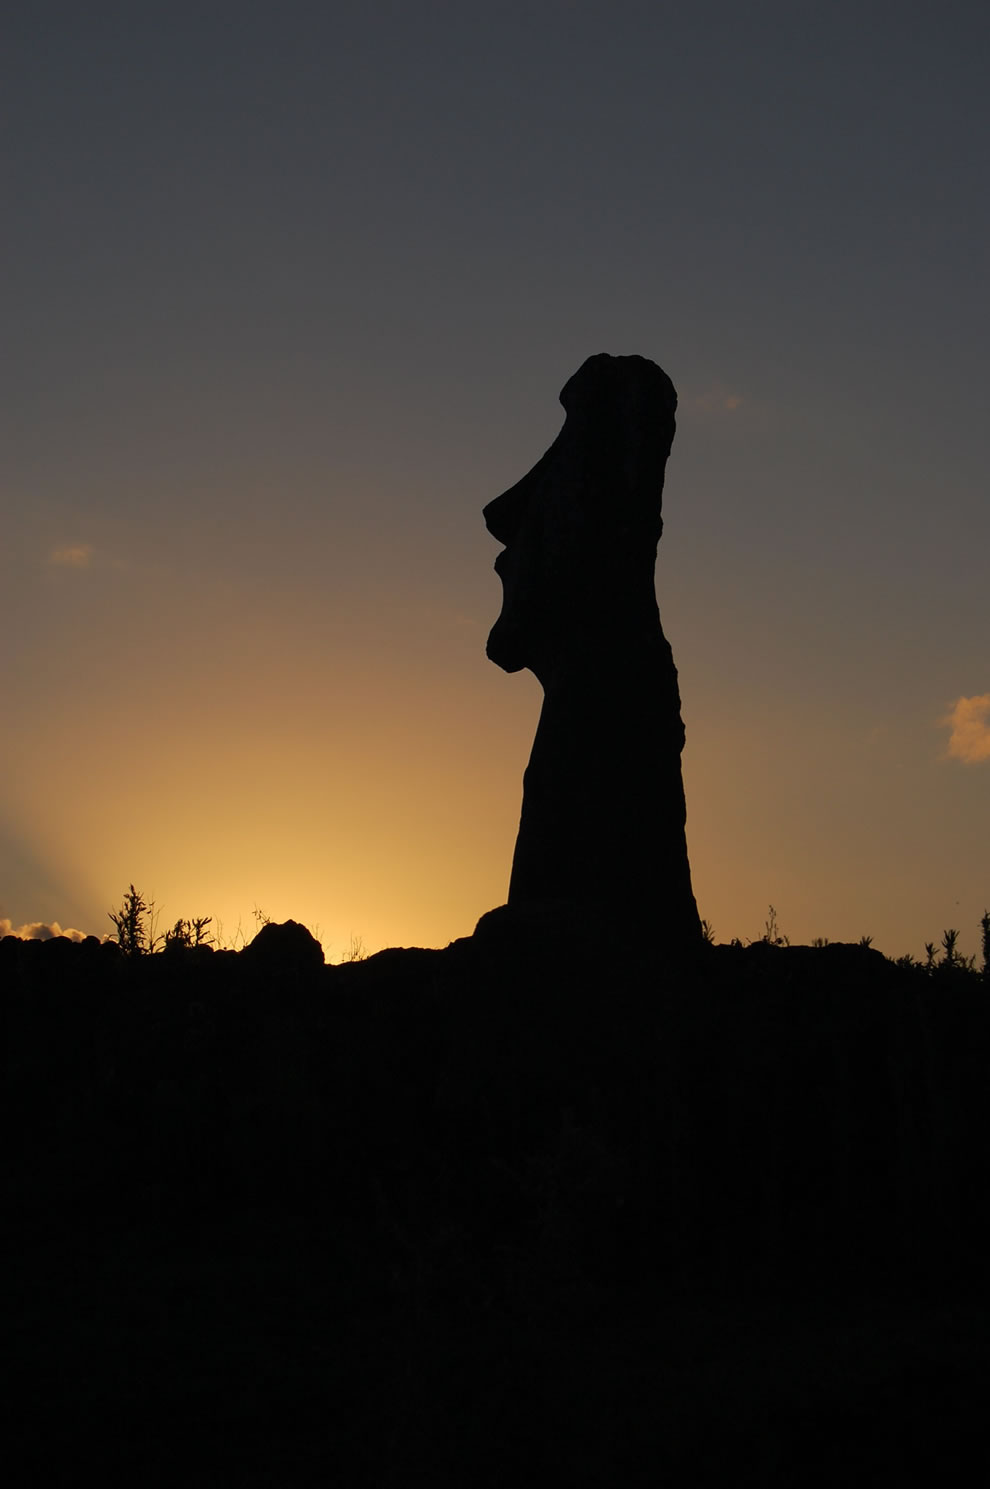 A moai silhouetted in one of the thousands of sunsets that have occurred since its being placed on the rocky shores of Easter Island